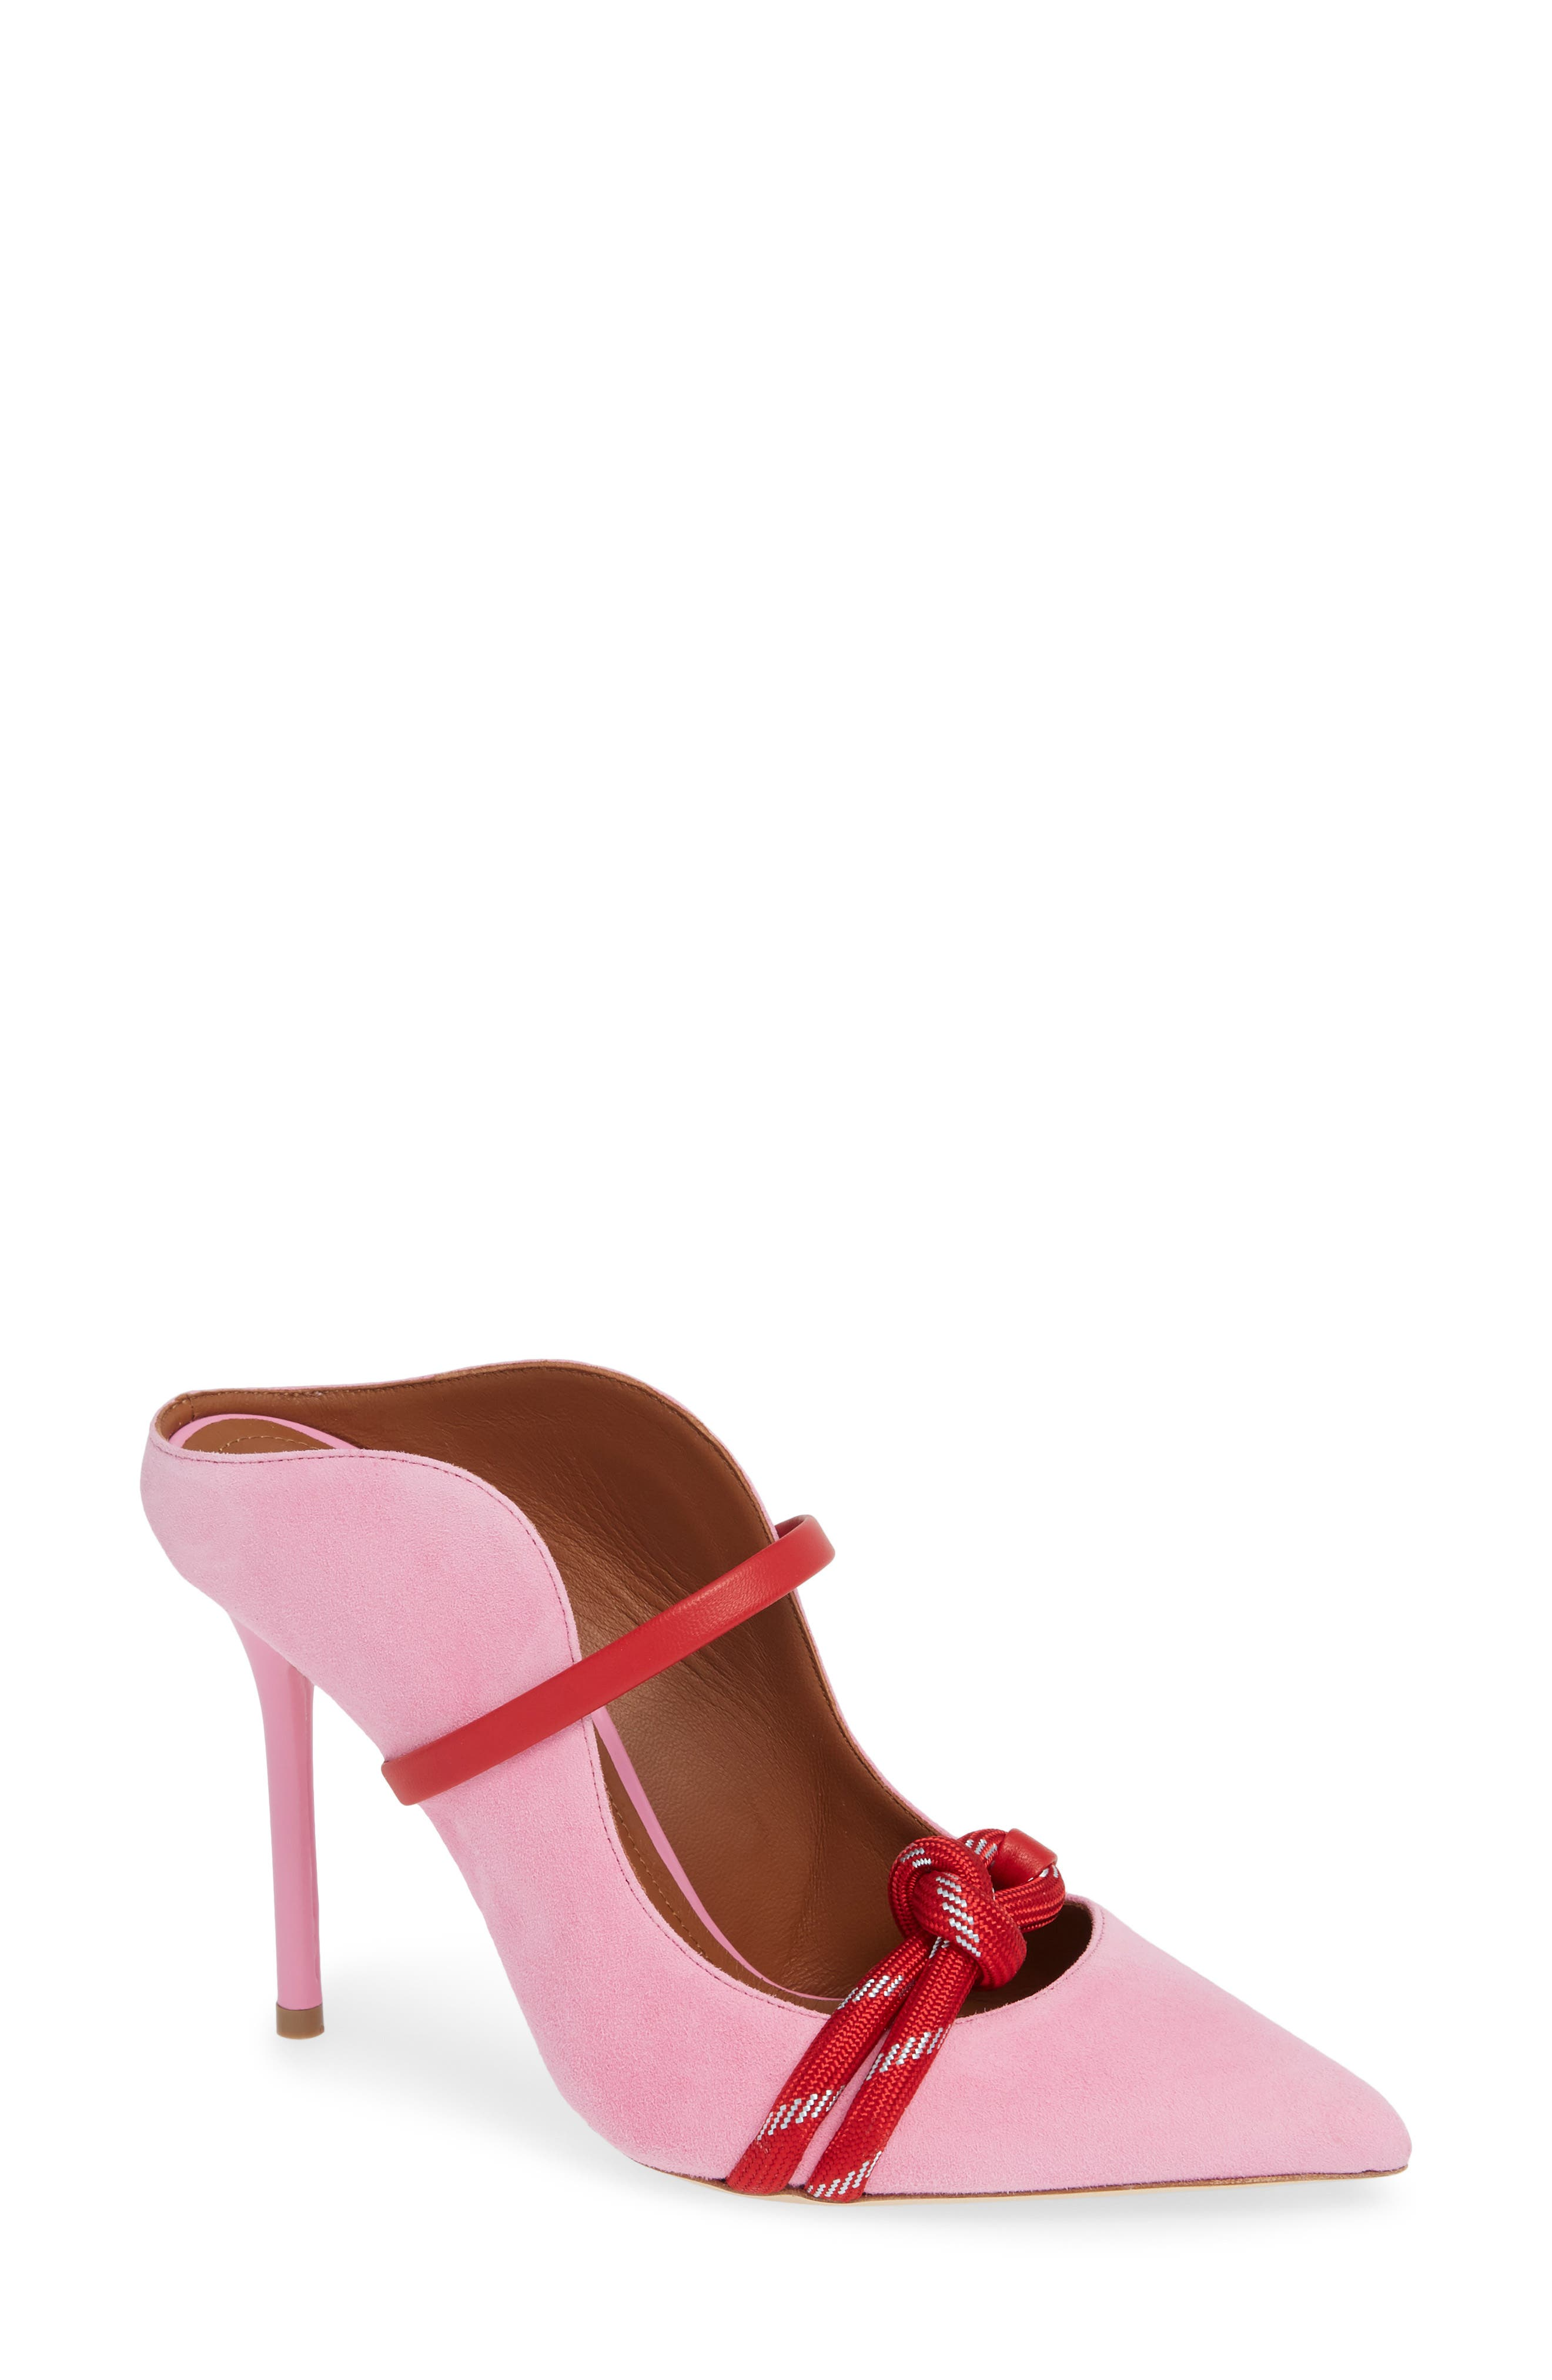 Malone Souliers Rope Pump - Pink